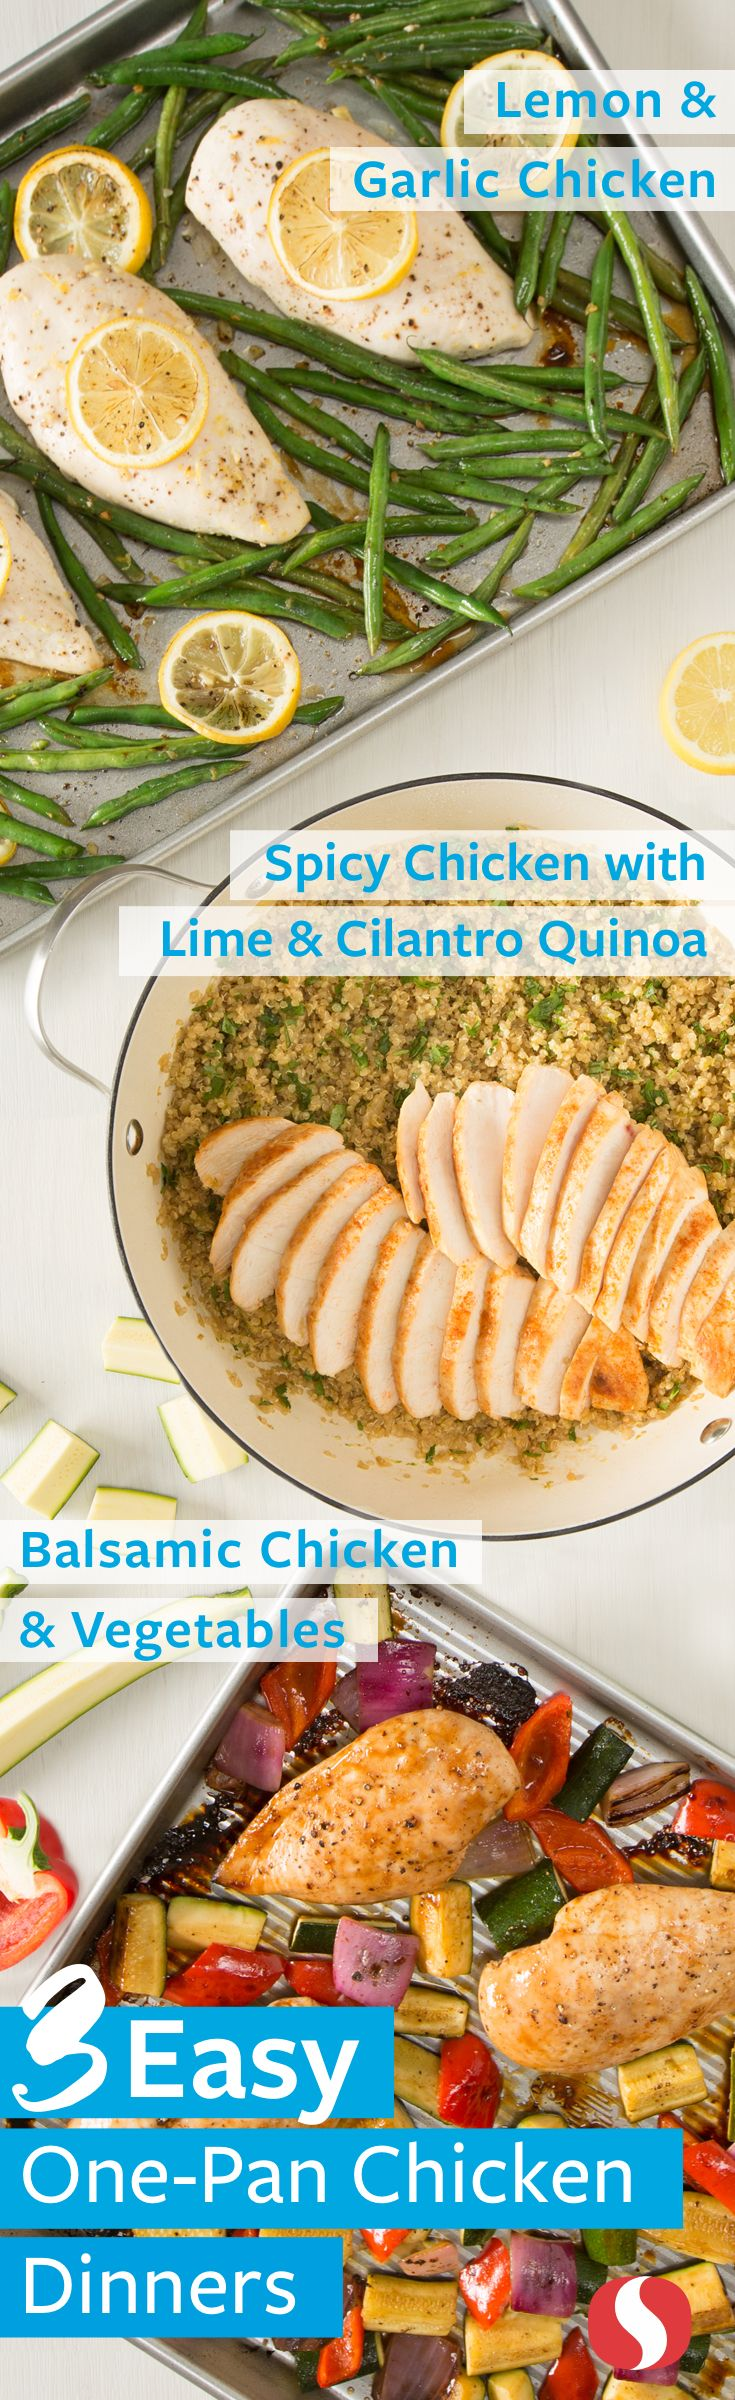 3 Easy One Pan Meals—Signature Farms™ quality boneless, skinless chicken breasts are the base for these simple one-pan meals. With minimal time and cleanup, you will have a protein-packed meal perfect for busy weeknights!